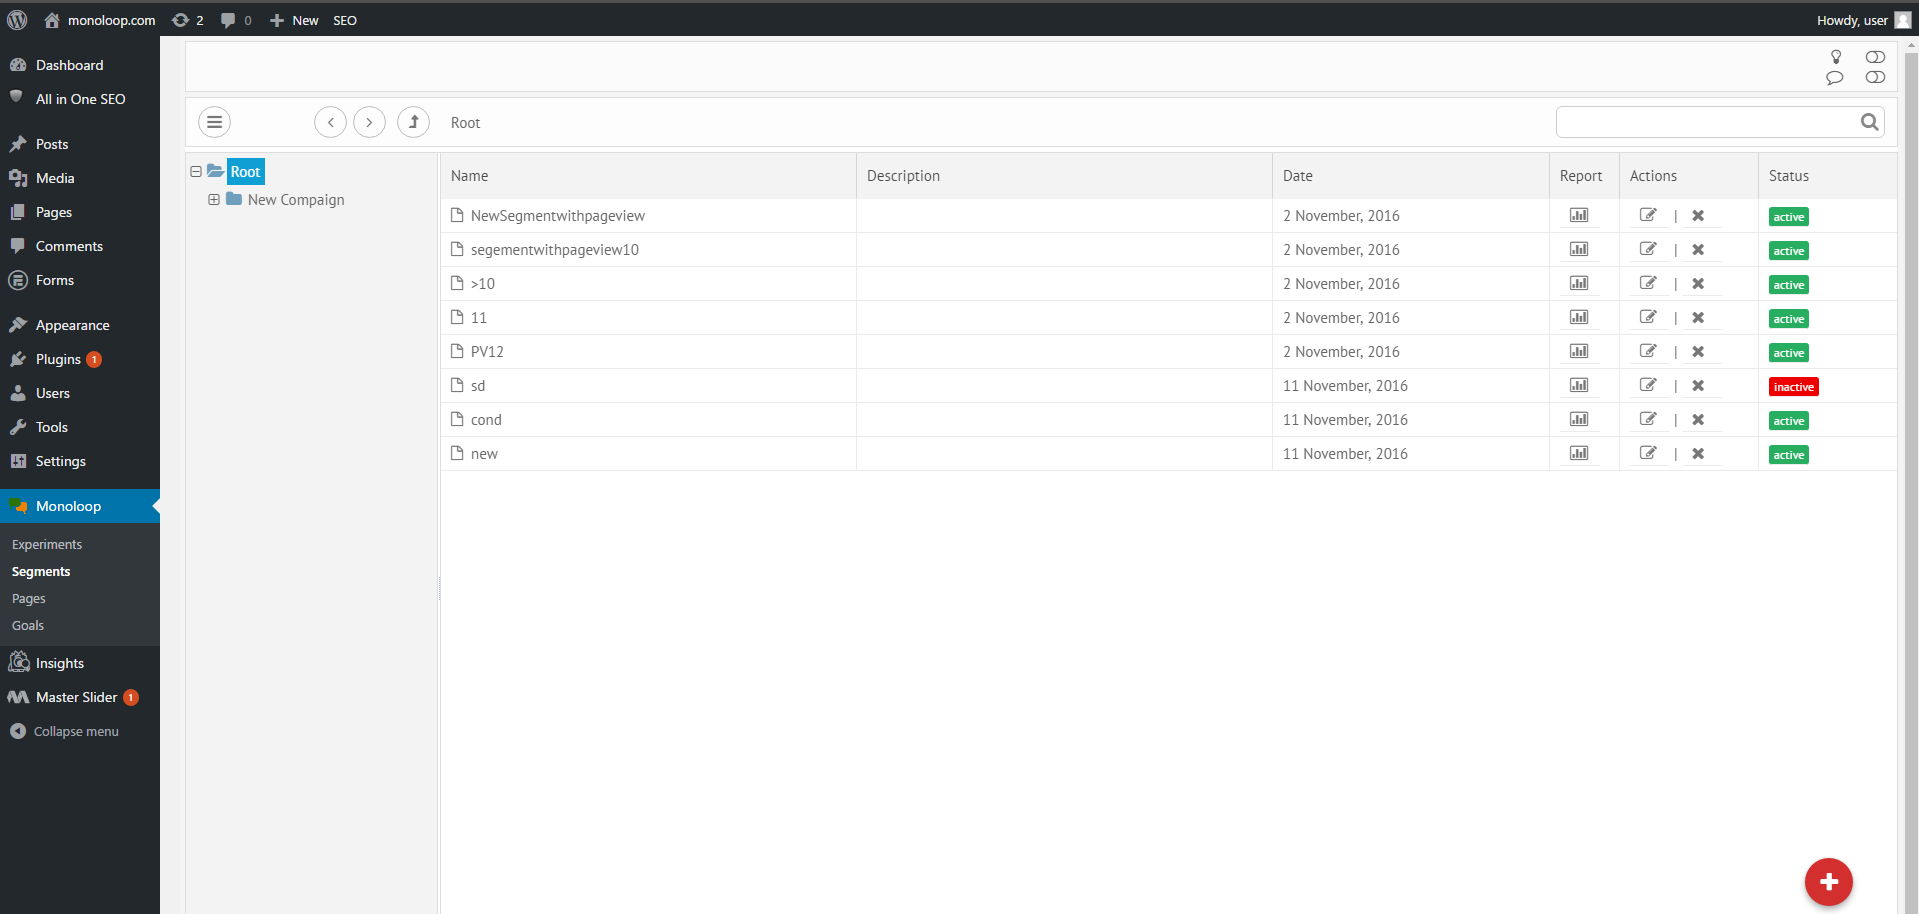 screenshot-8.png: Full overview of active and inactive audience segments.